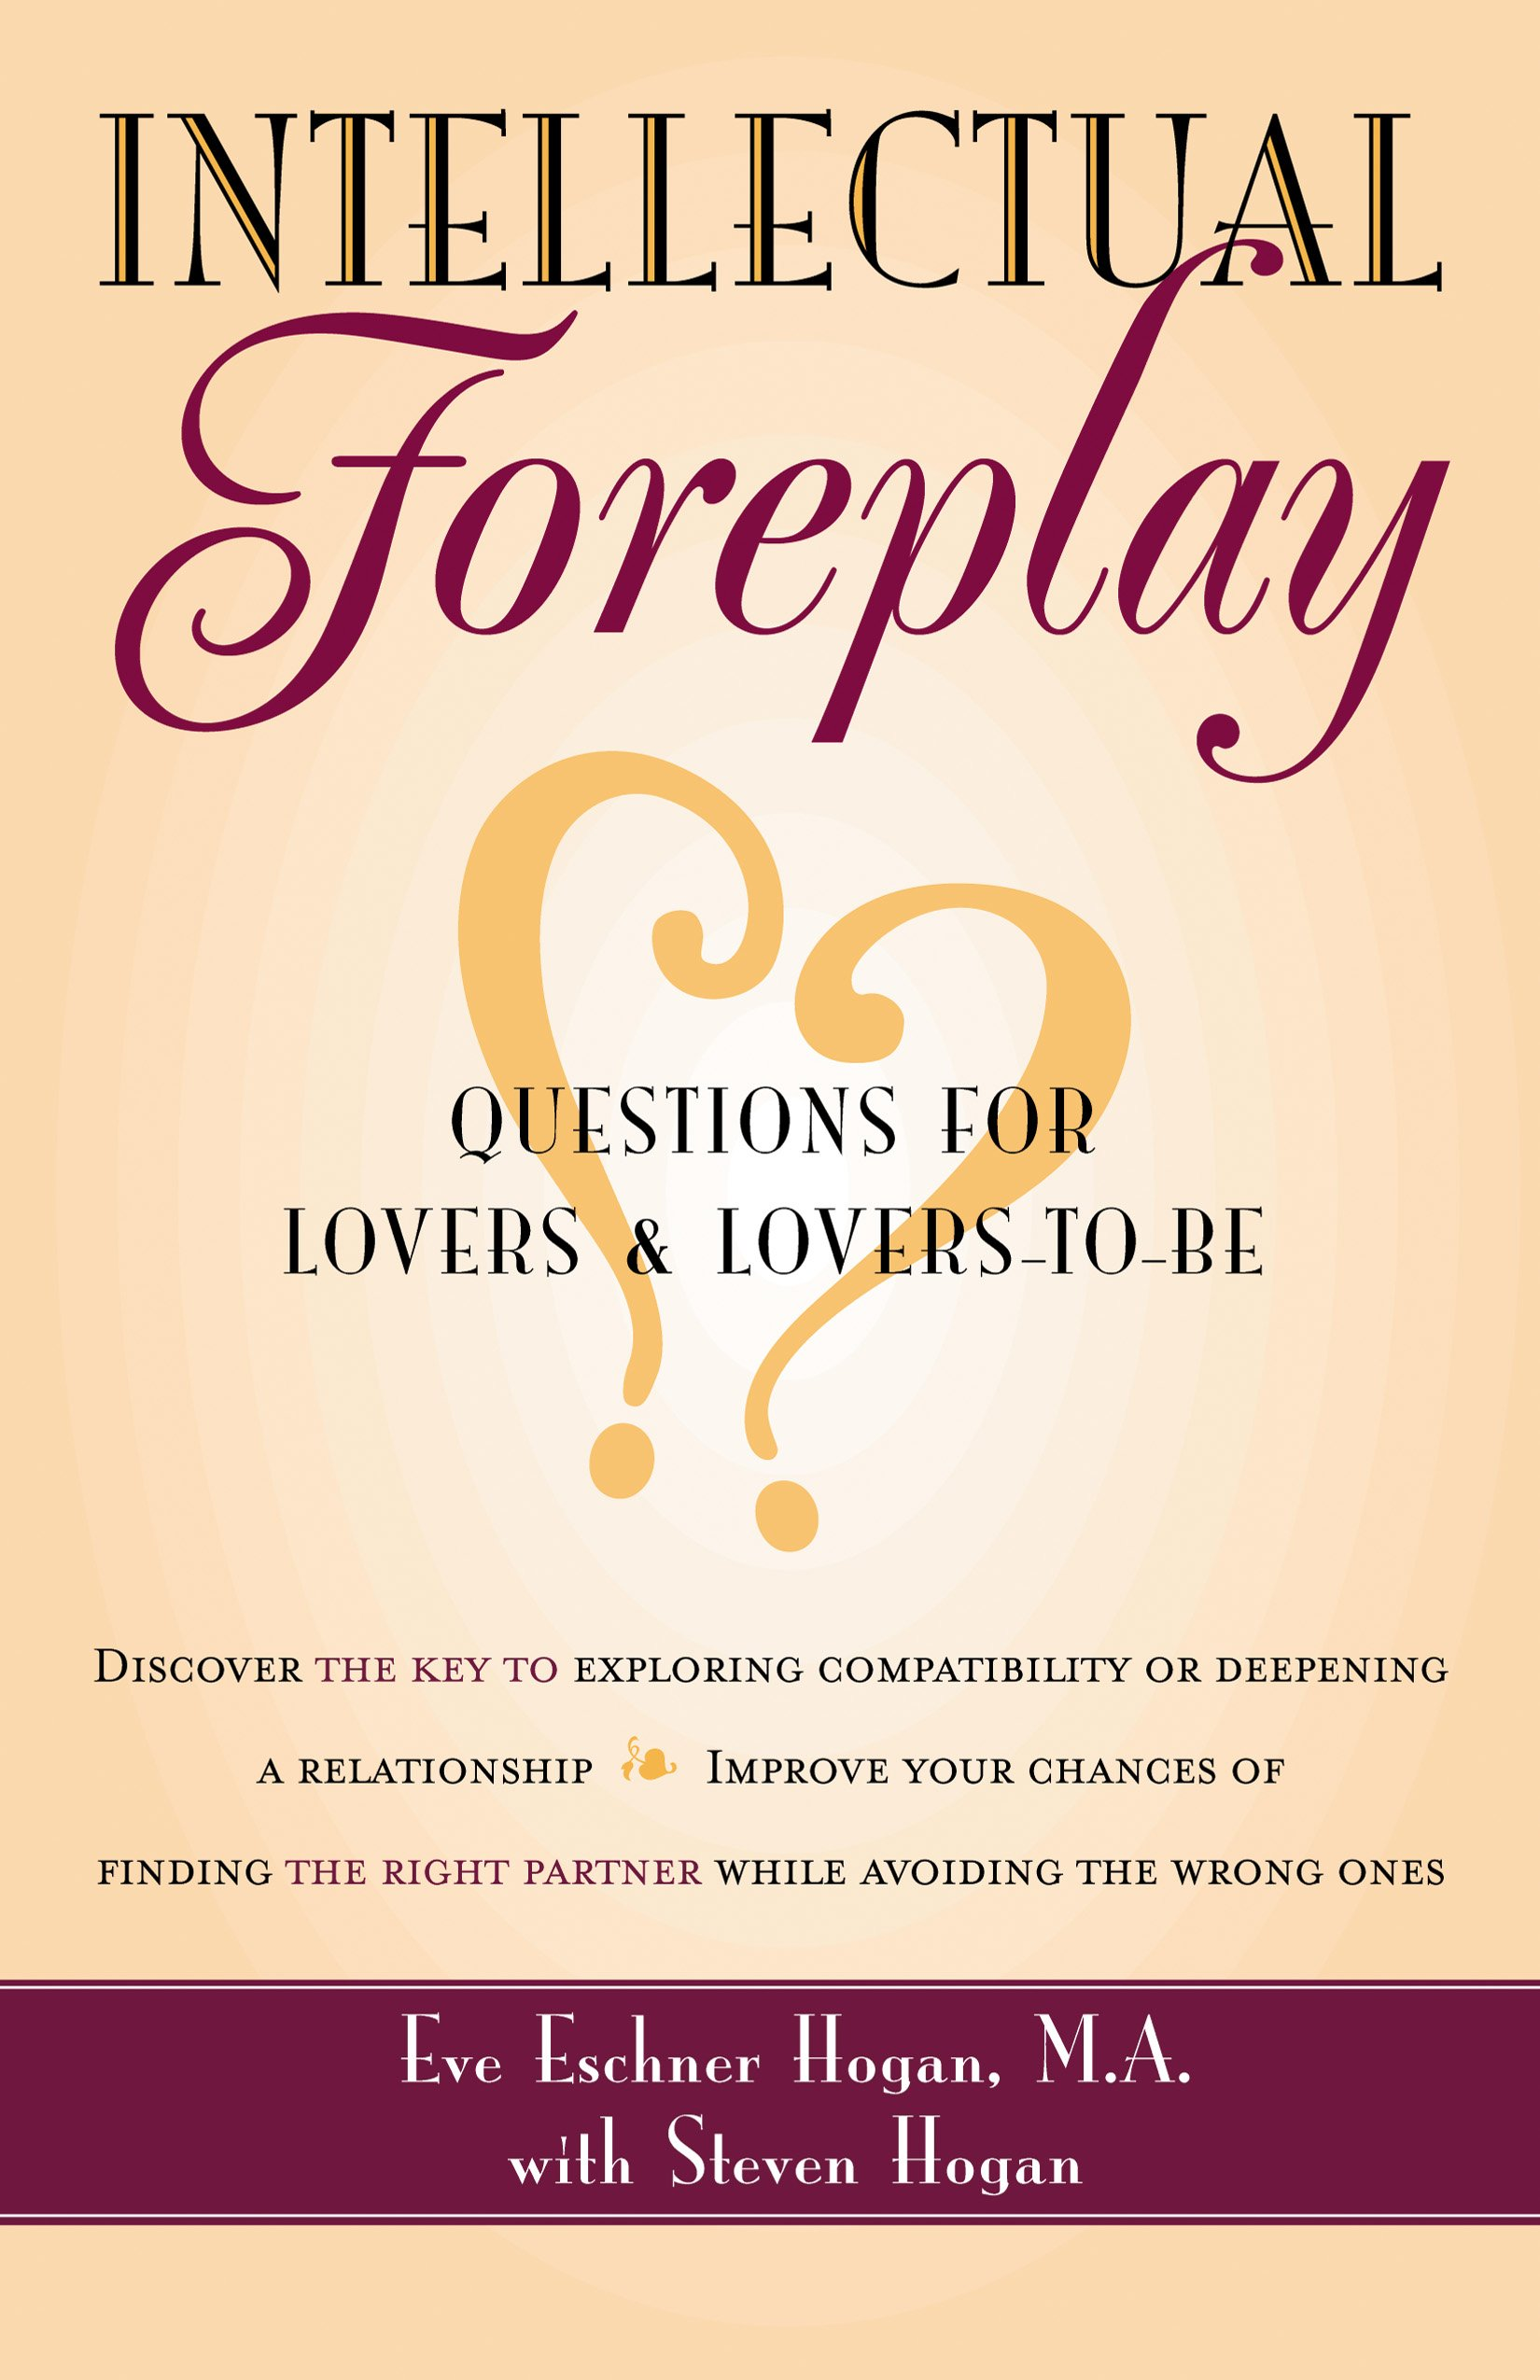 intellectual foreplay book